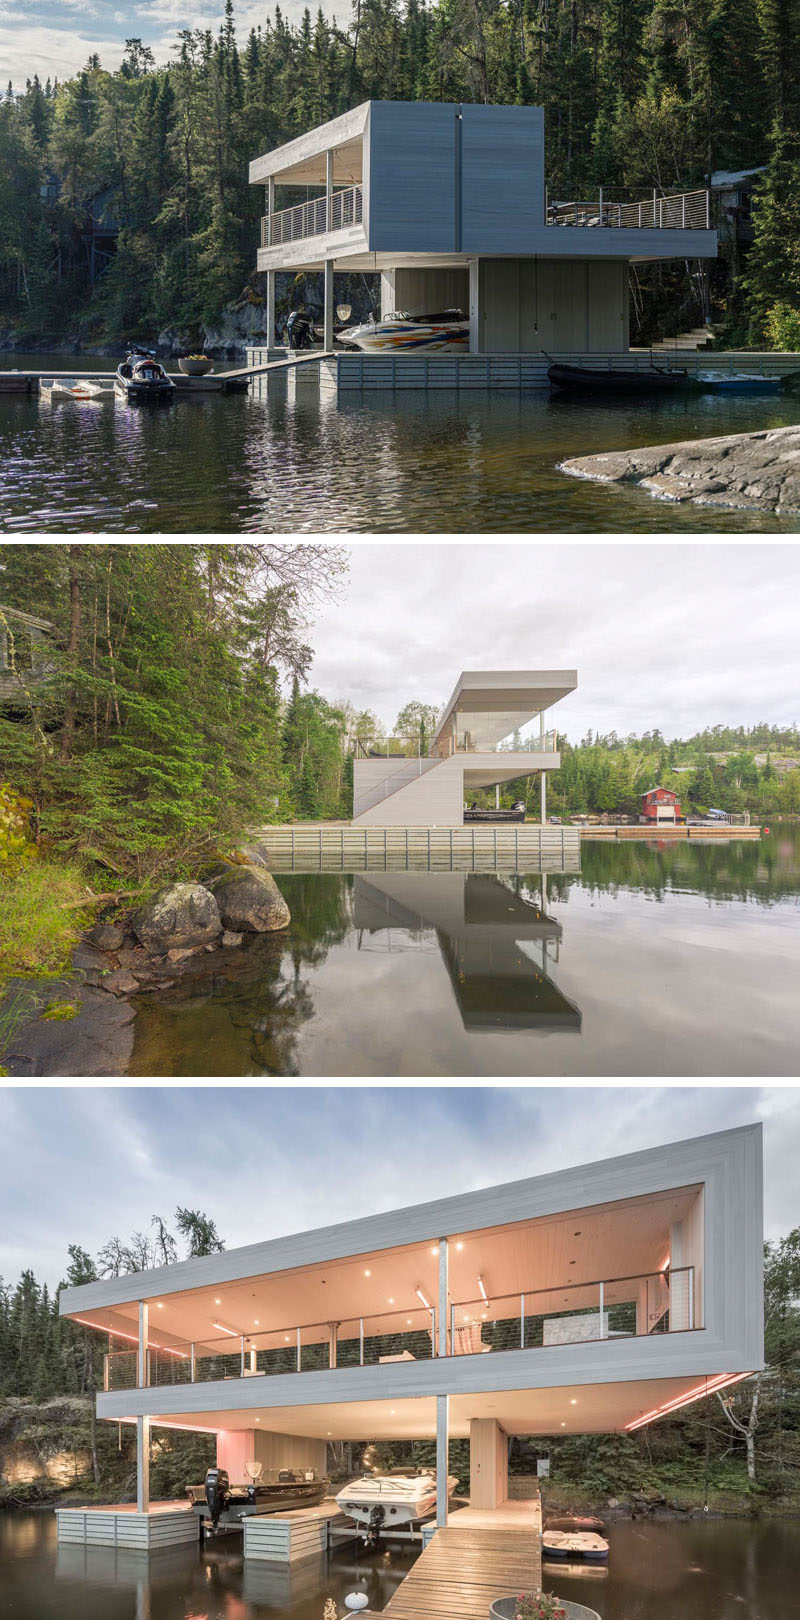 Cibinel Architecture have designed a modern boathouse for lounging and entertaining, that sits on Lake of the Woods in Canada.